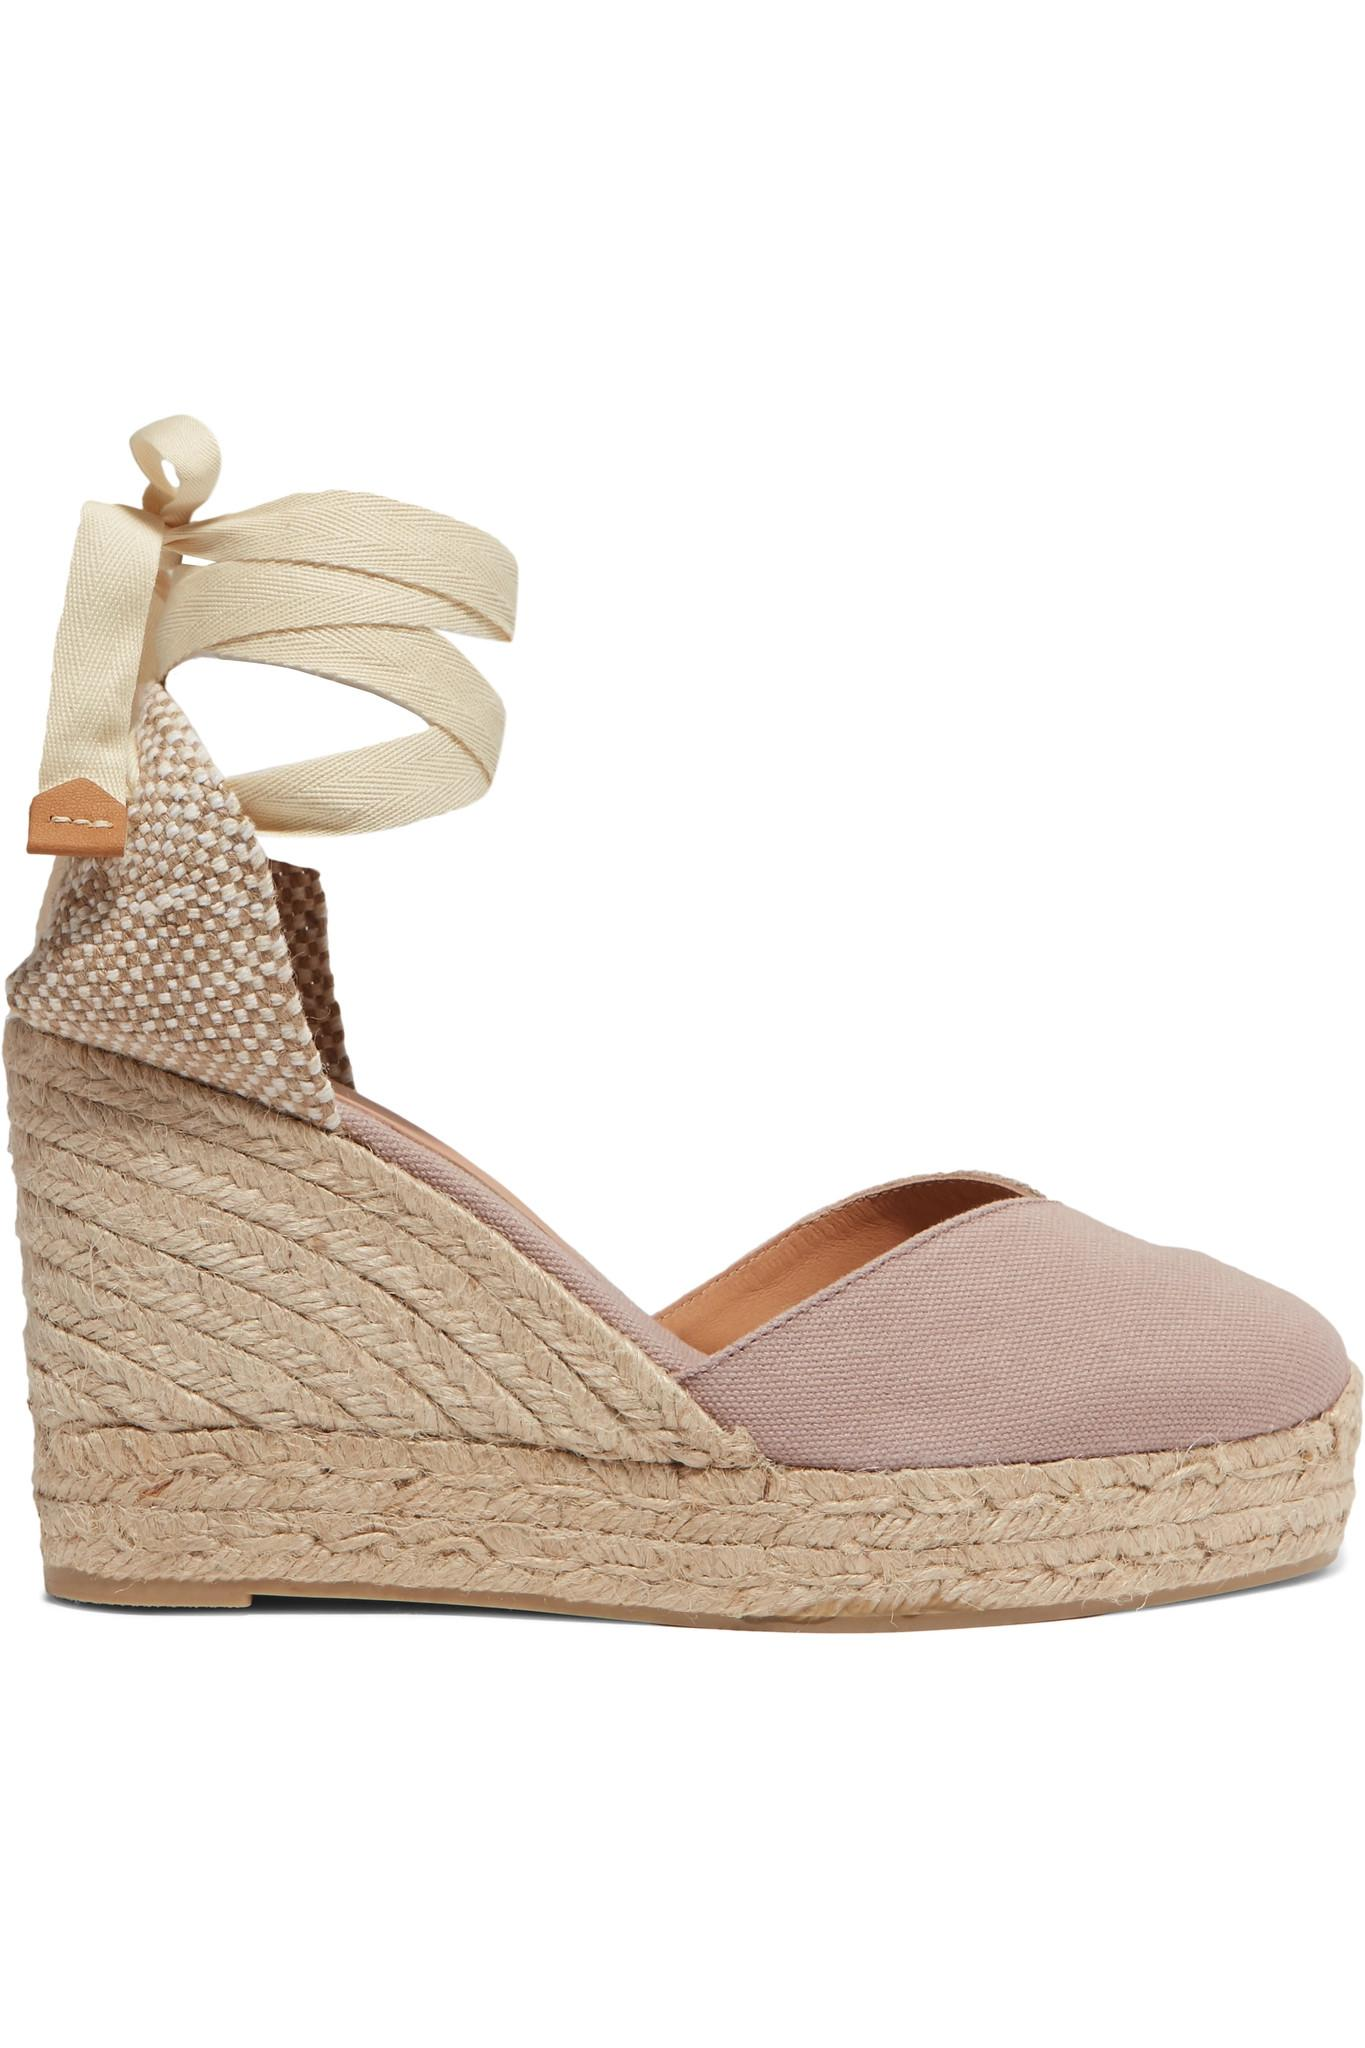 07abcda0406 Castaner Chiara 80 Canvas Wedge Espadrilles in Natural - Lyst